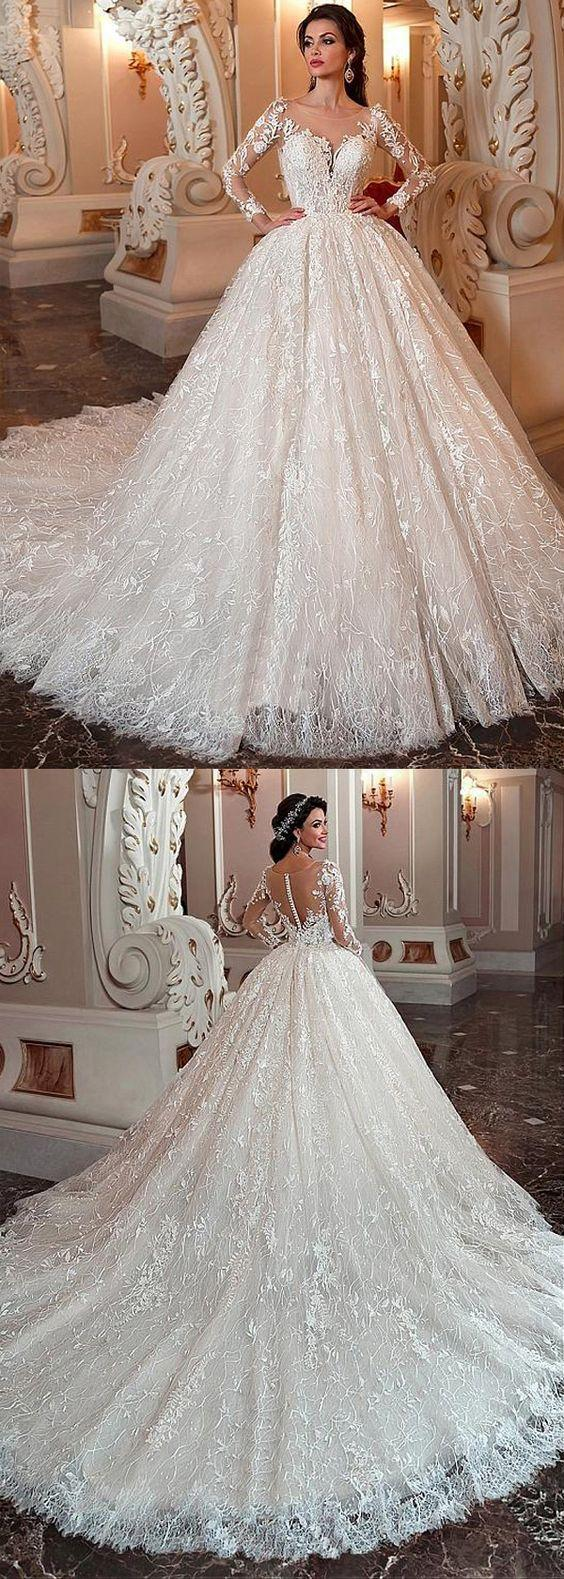 Mariage - Marvelous Lace & Tulle Scoop Neckline Ball Gown Wedding Dress With Lace Appliques & Beadings